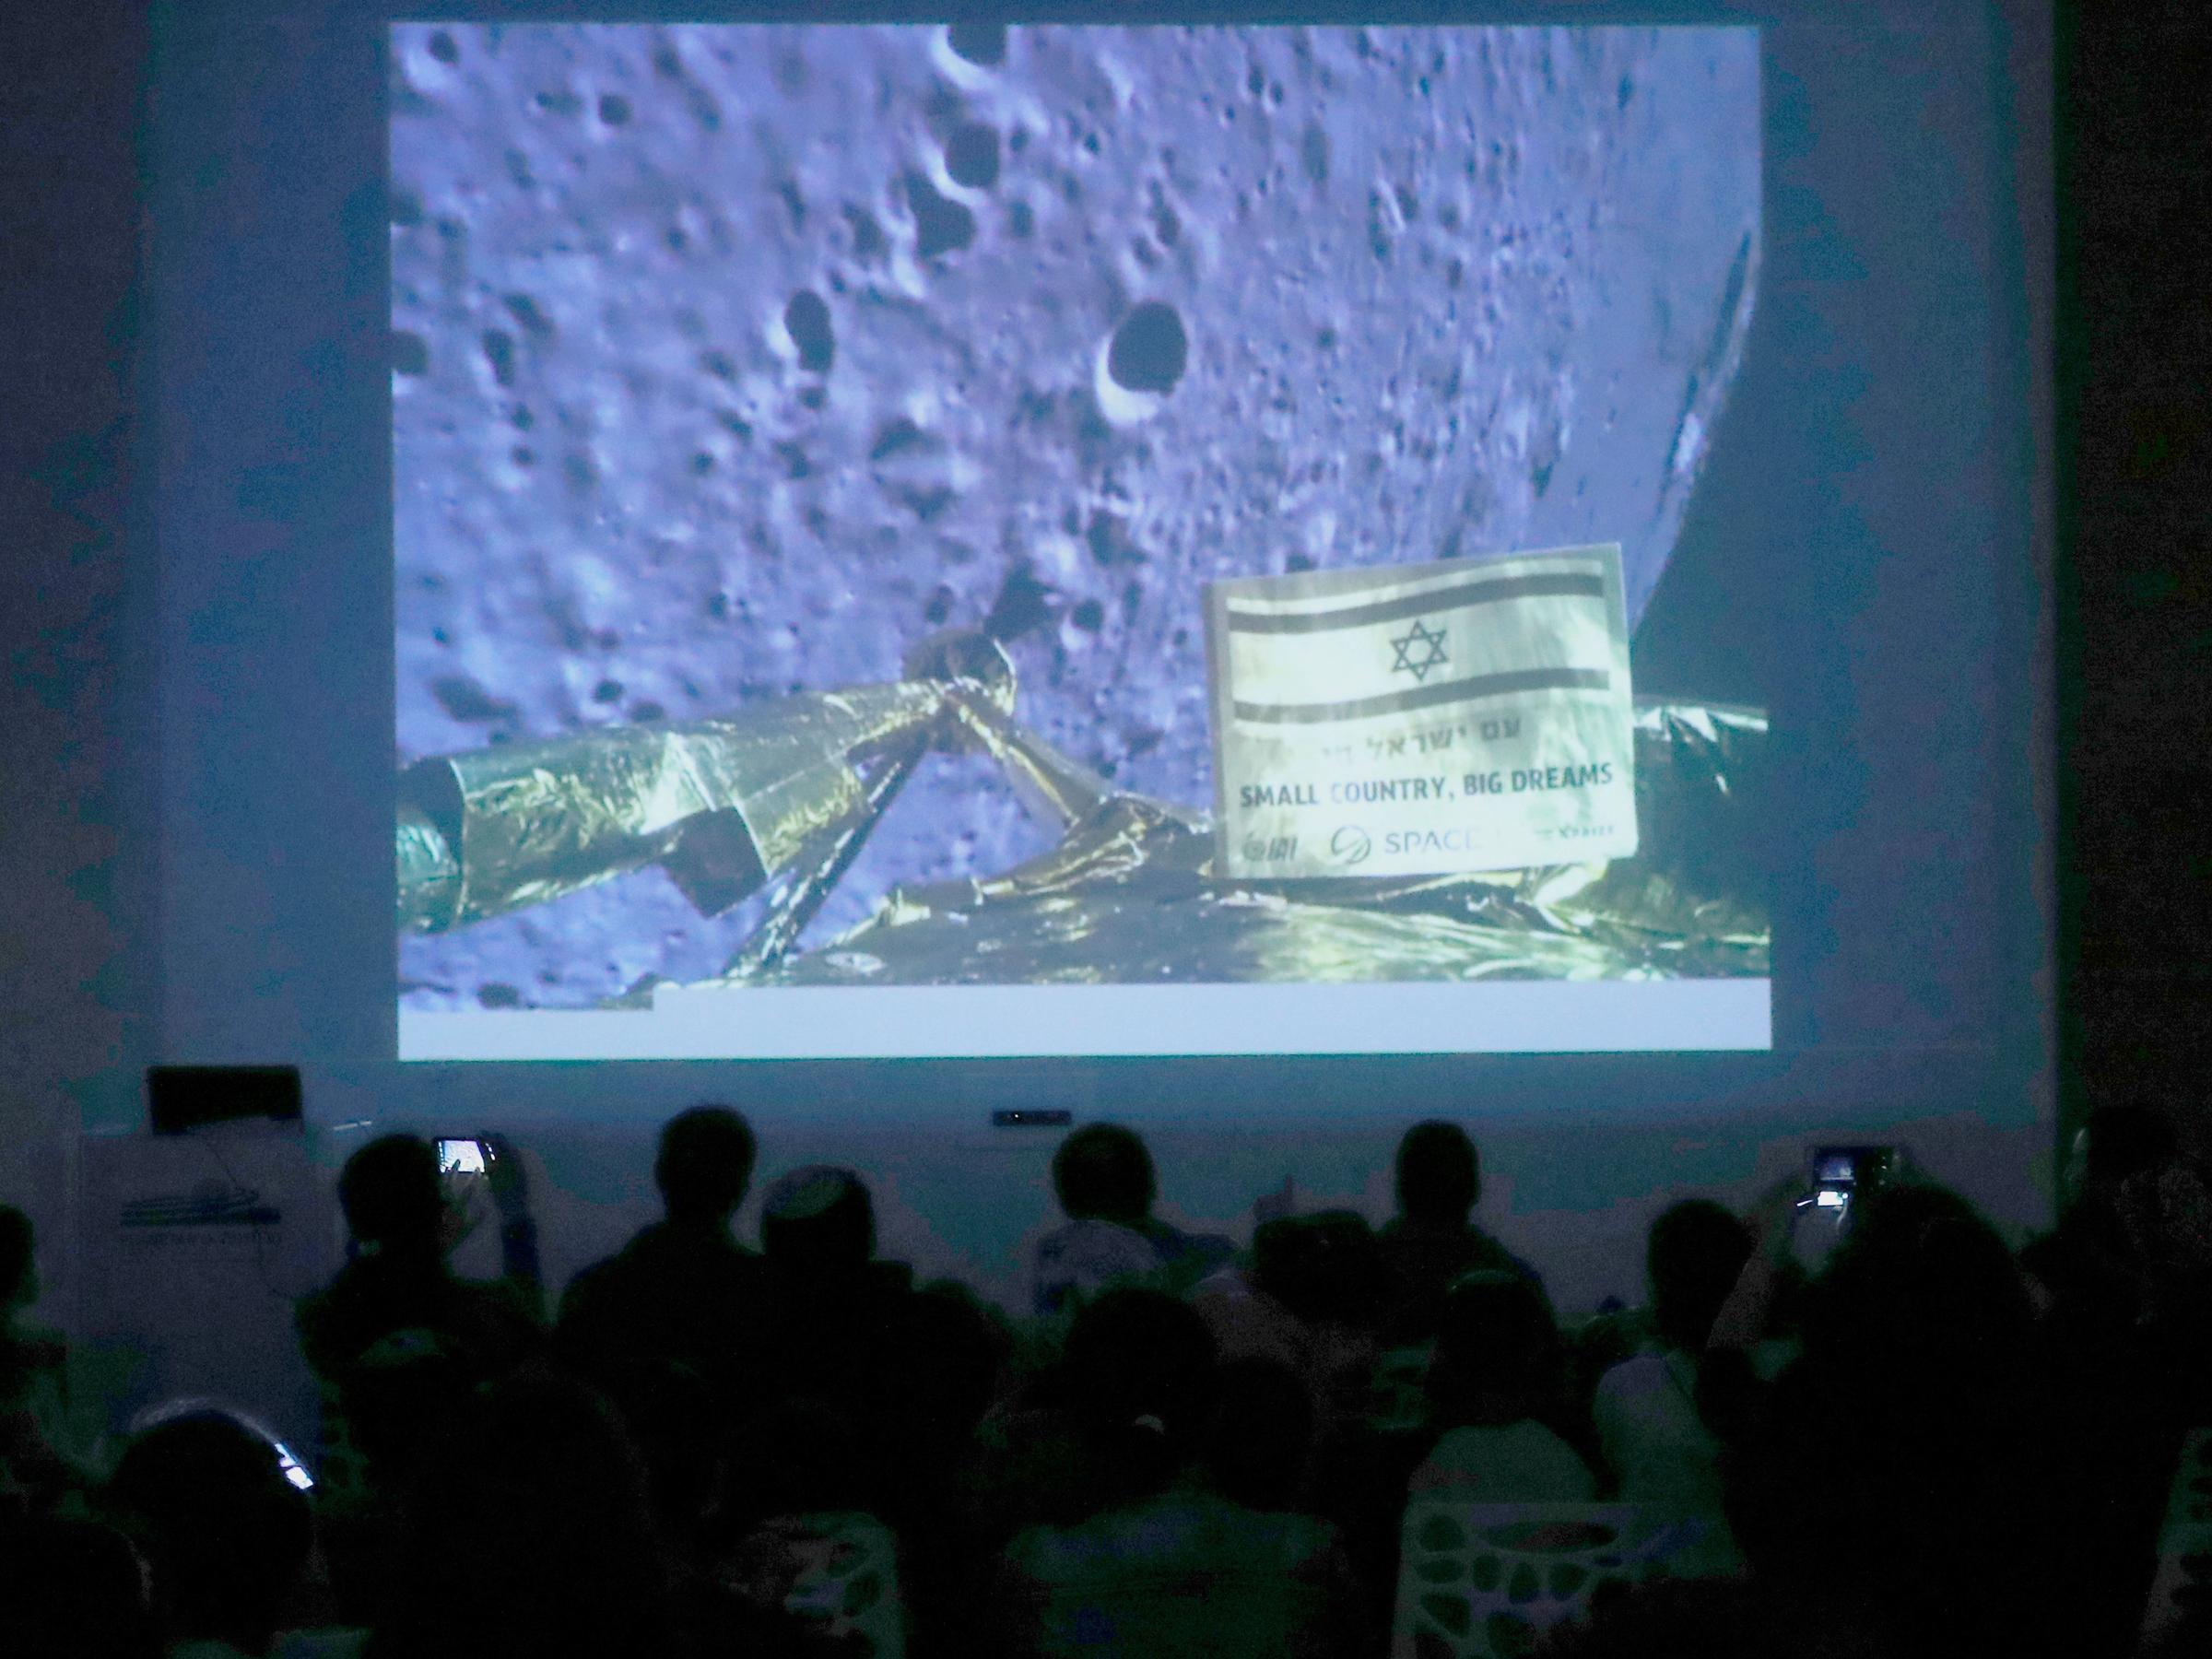 Israel Poised to Join Cosmic Powers with Lunar Landing